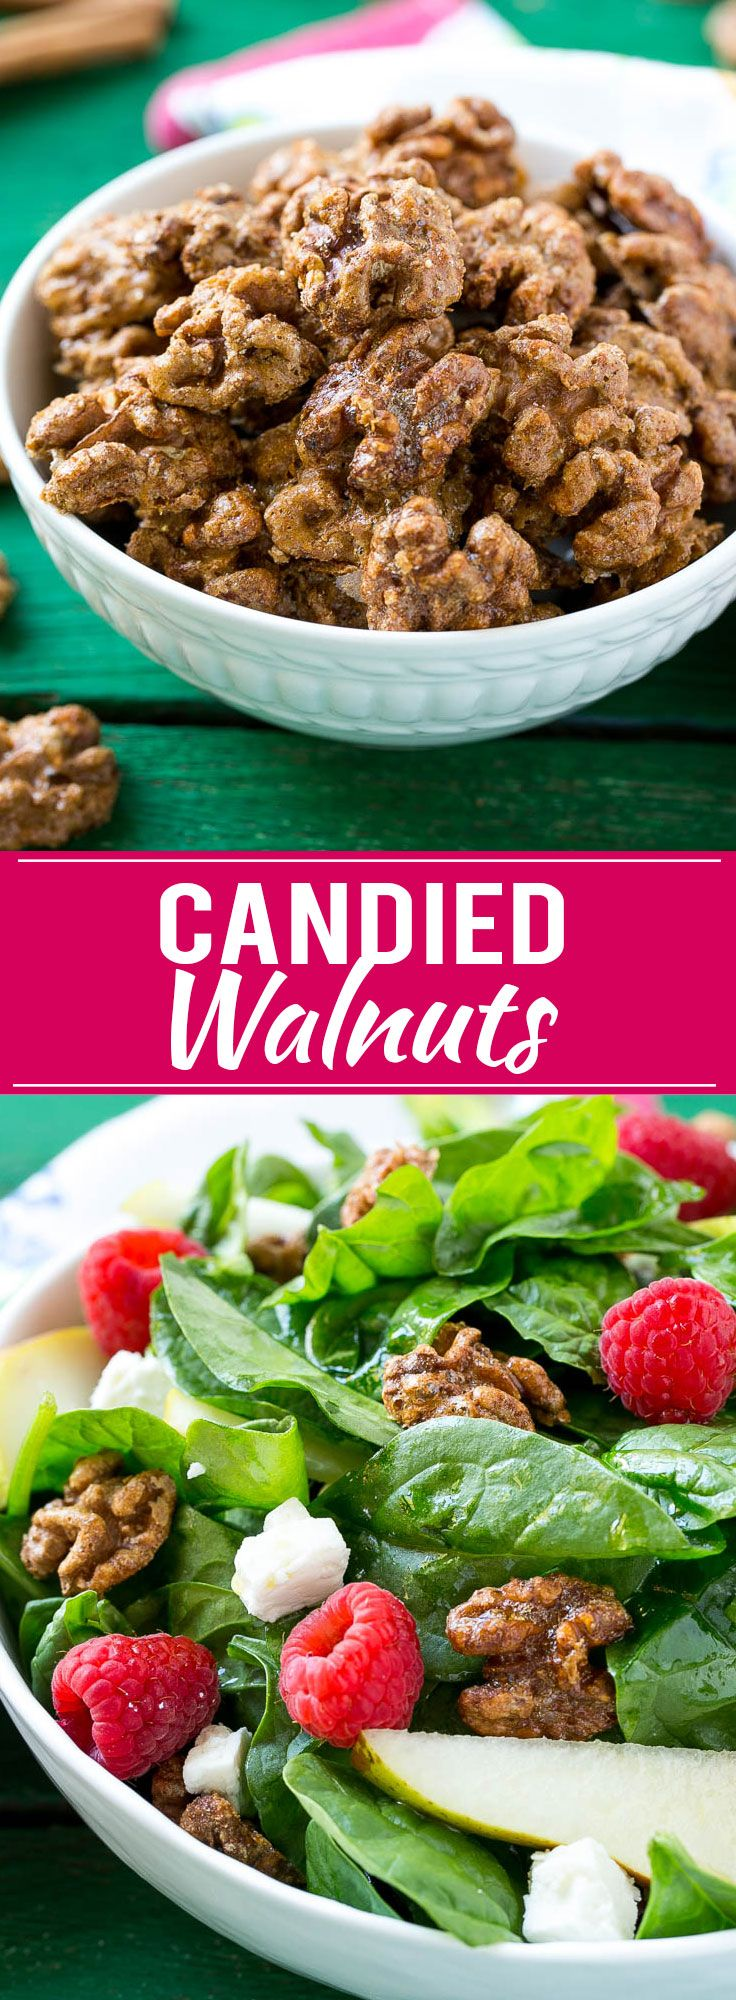 This recipe for candied walnuts is walnut halves coated in a sweet cinnamon sugar mixture and baked to crispy and crunchy perfection. Candied walnuts are perfect for salads, snacking or package them up for a fun homemade gift idea!: